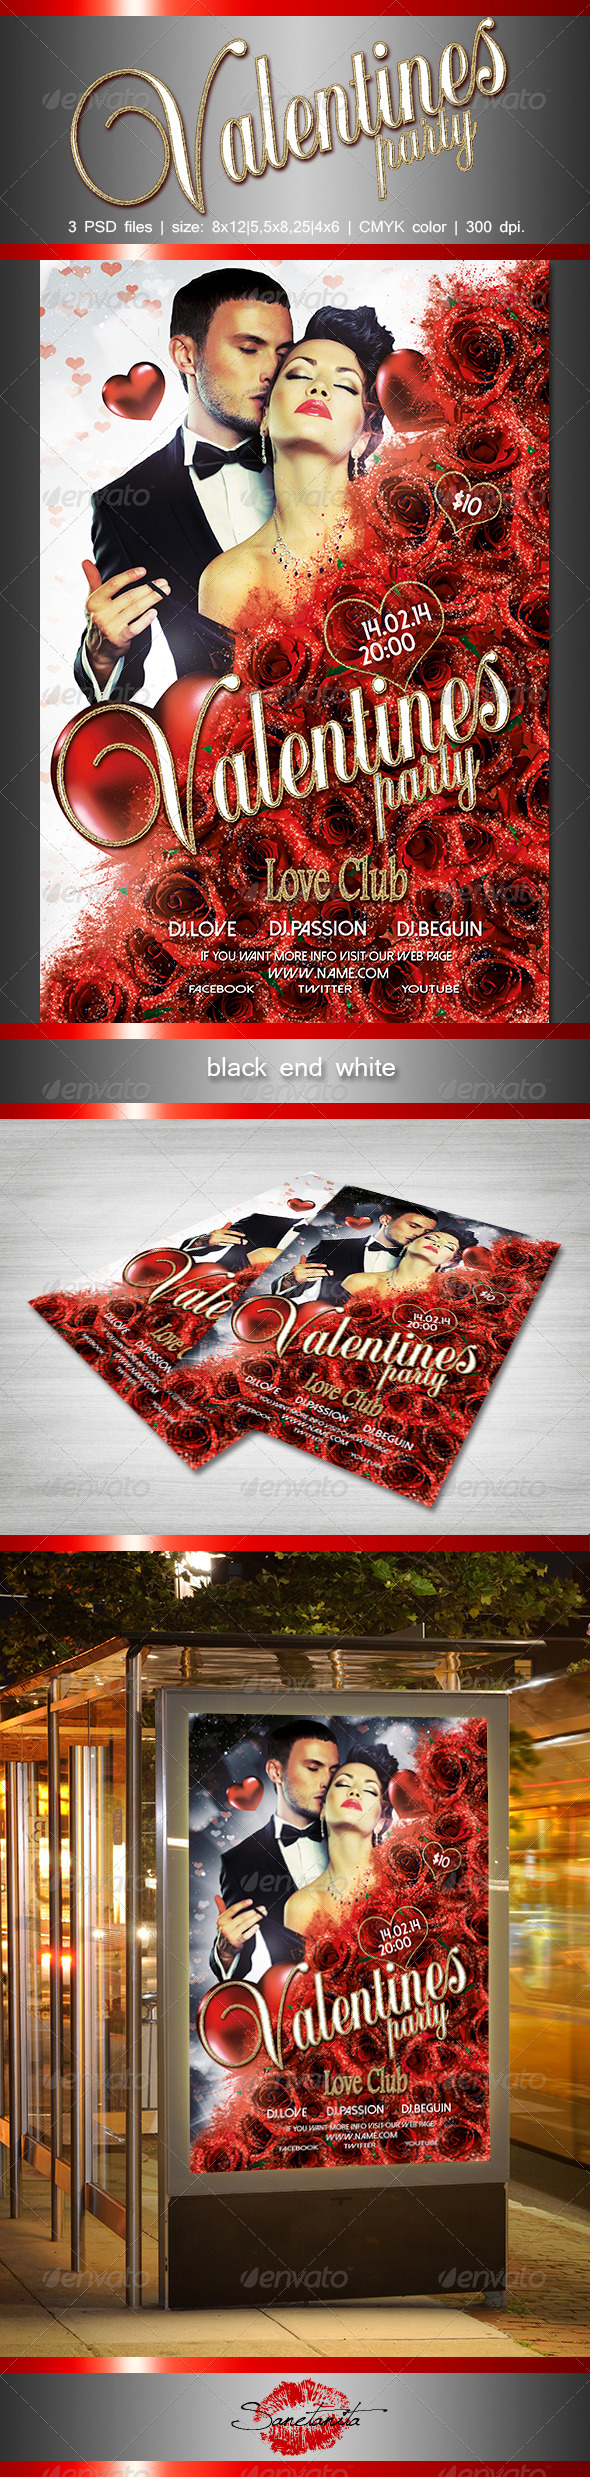 Valentines Party Flyer - Holidays Events